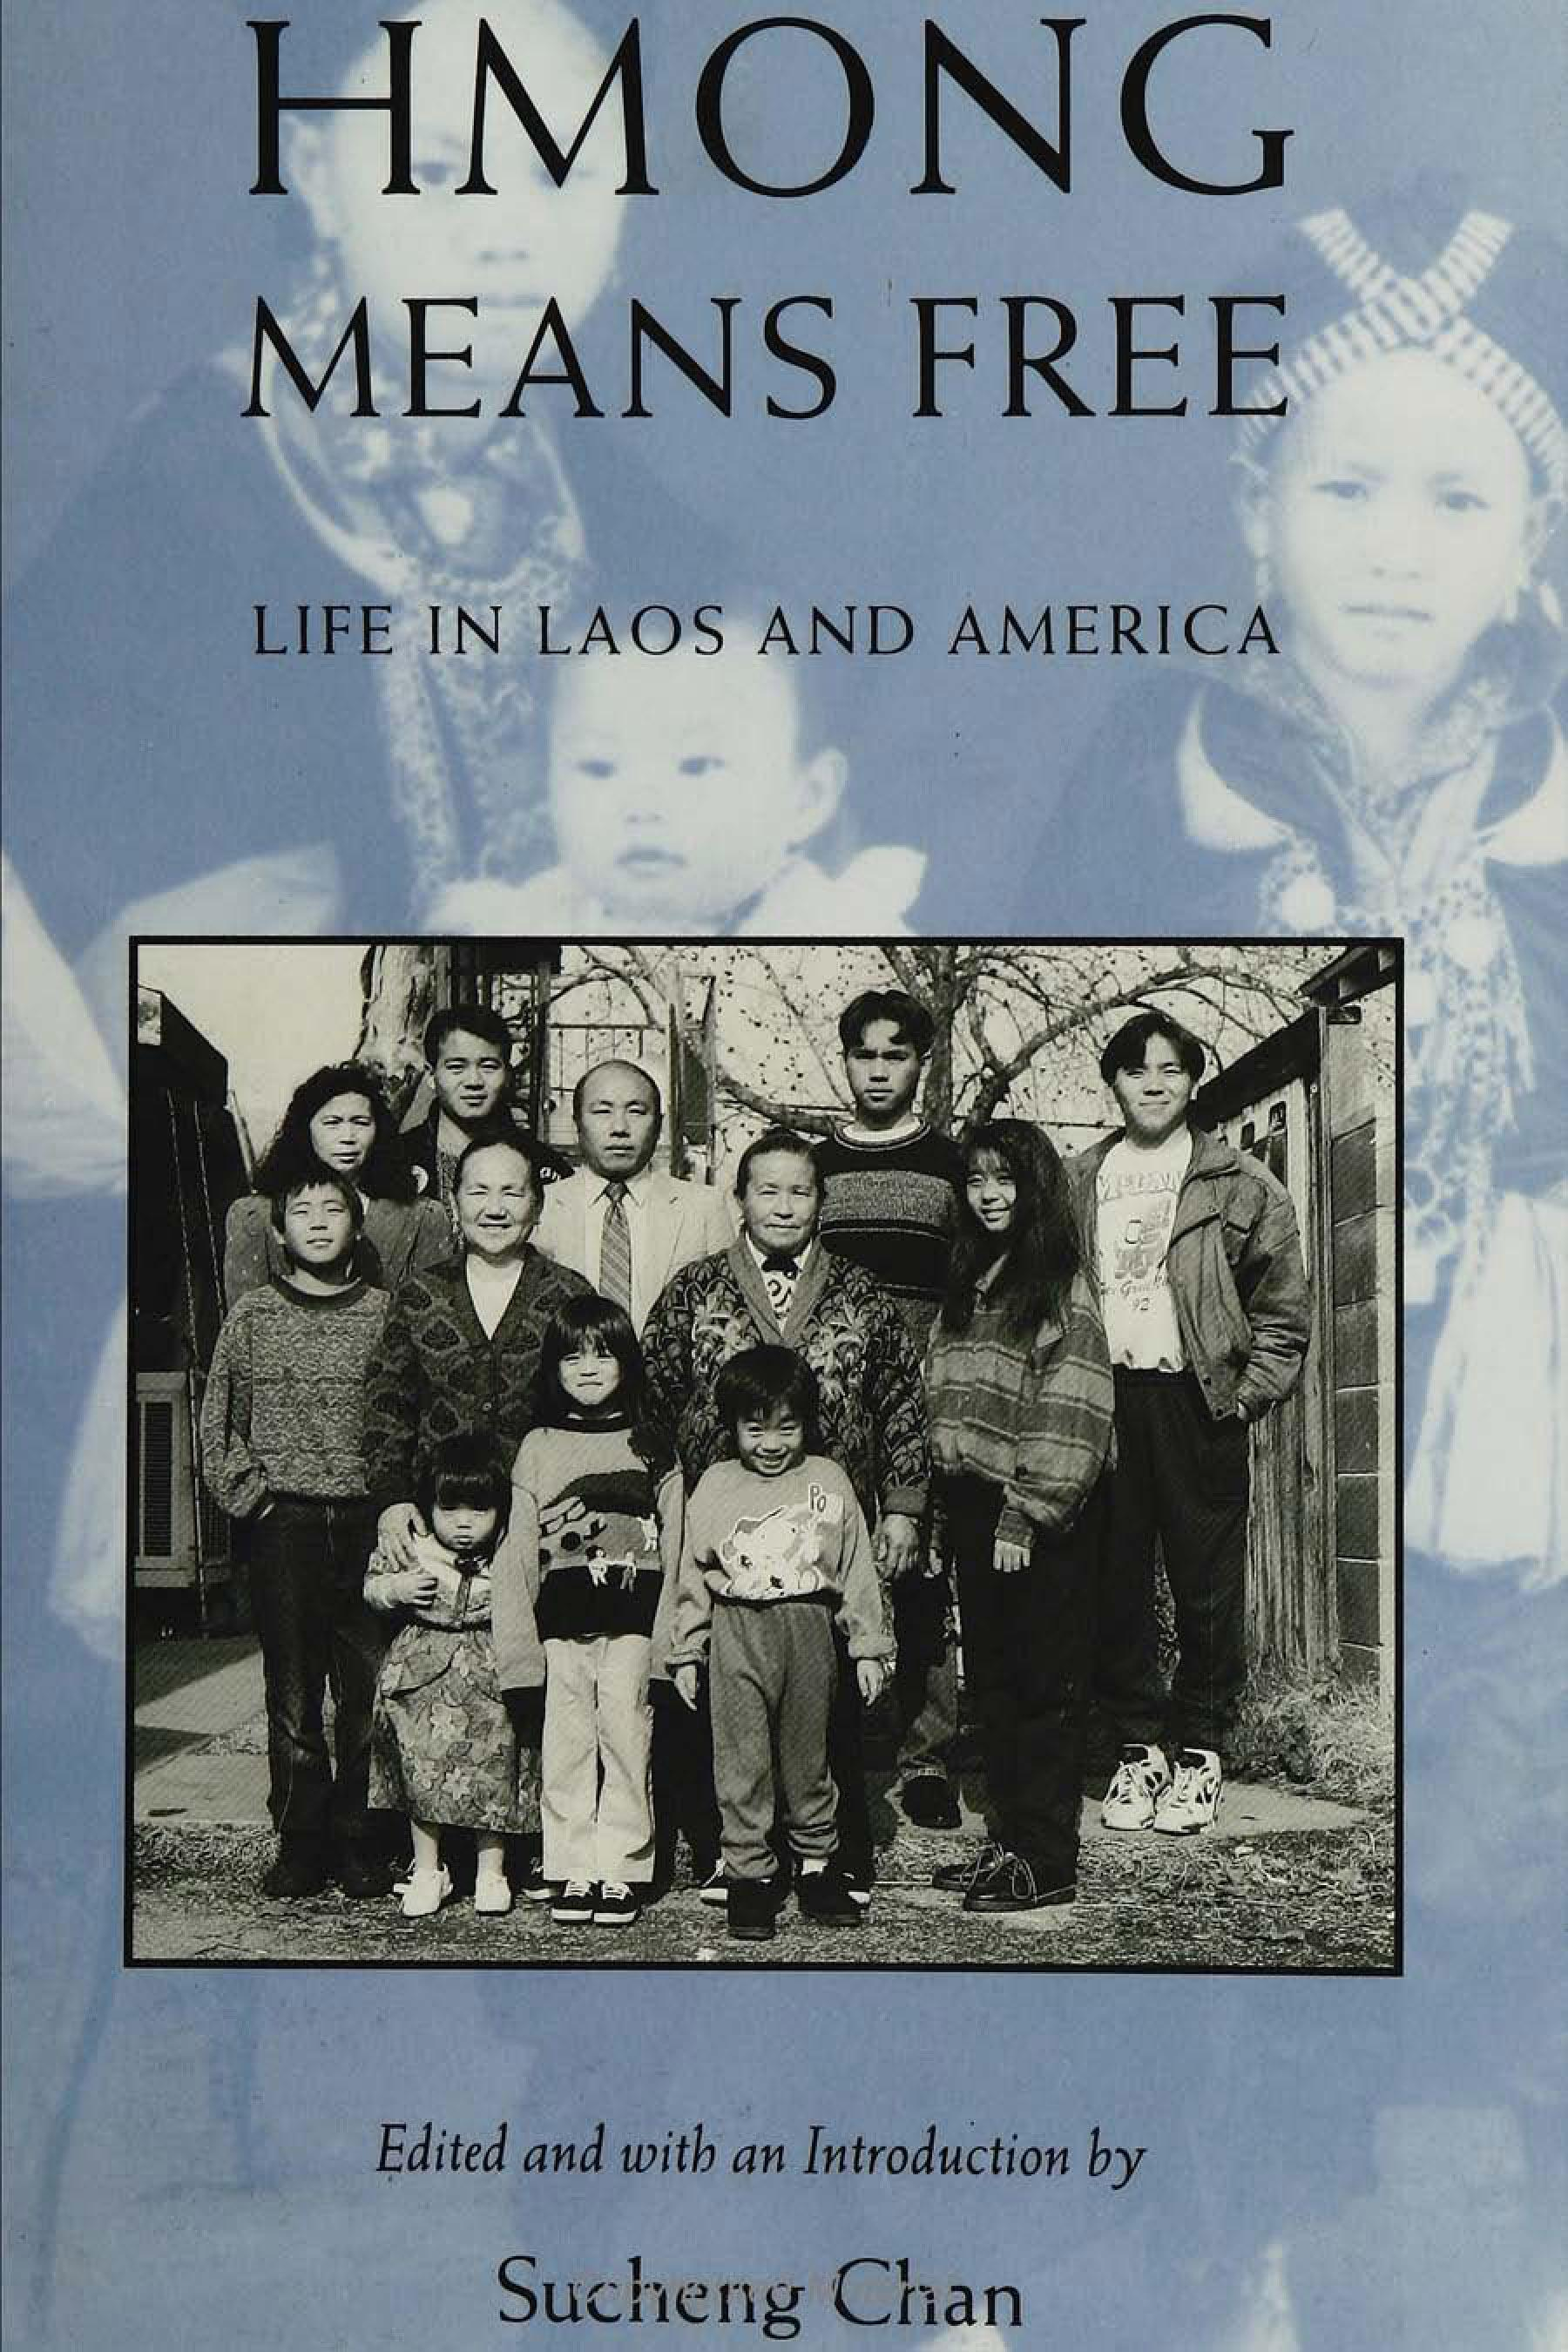 Hmong Means Free: Life in Laos and America. Asian American History and Culture. EB9781439901397